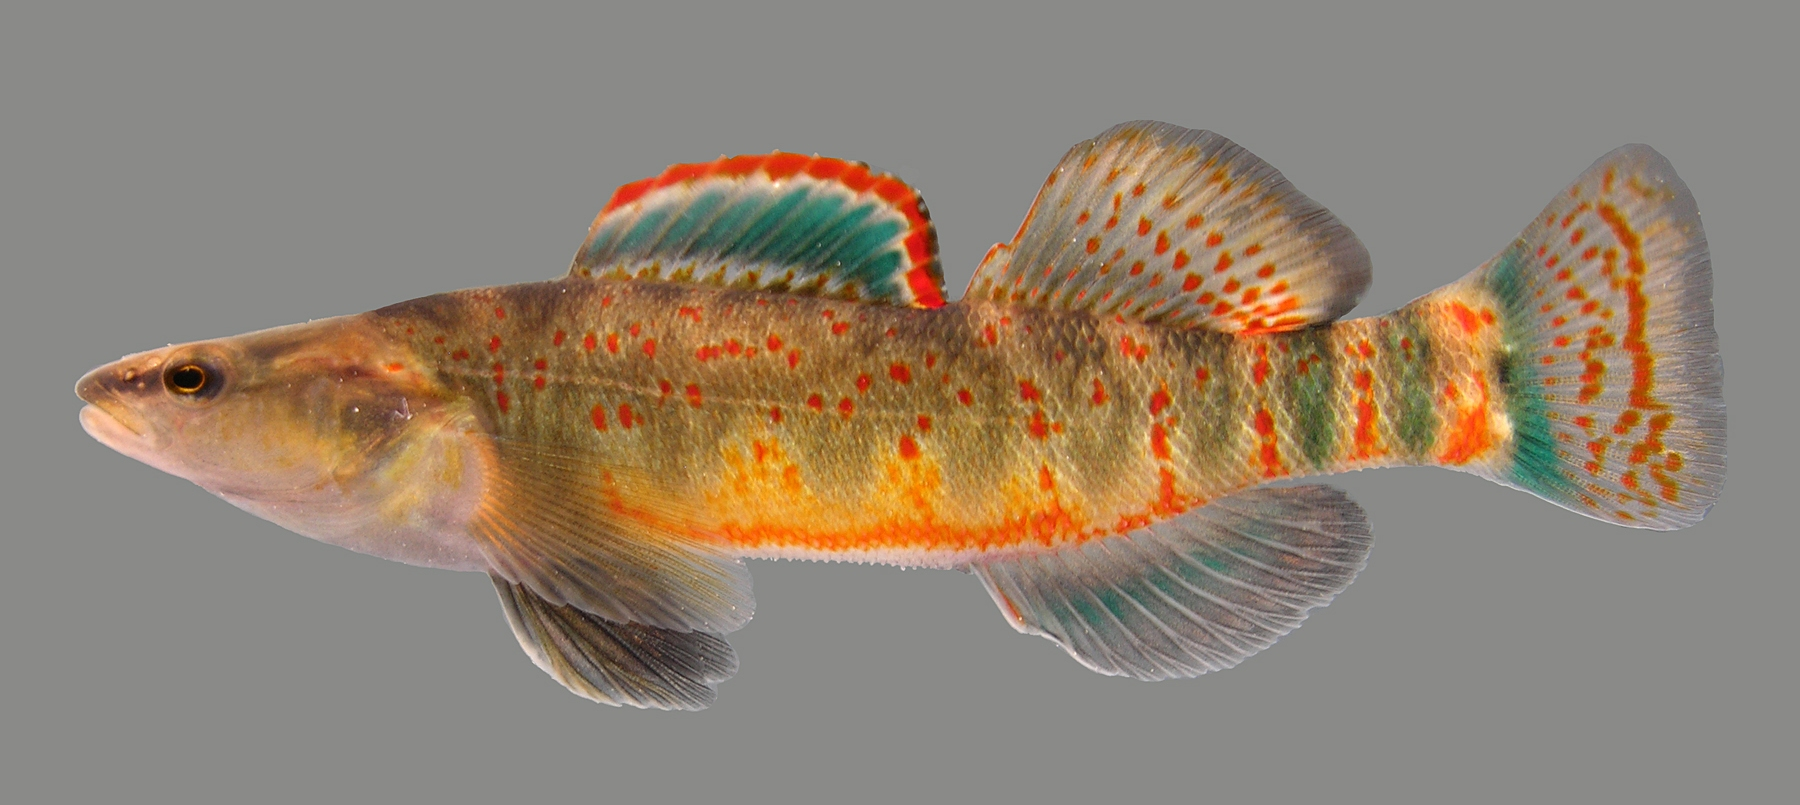 etheostoma spilotum